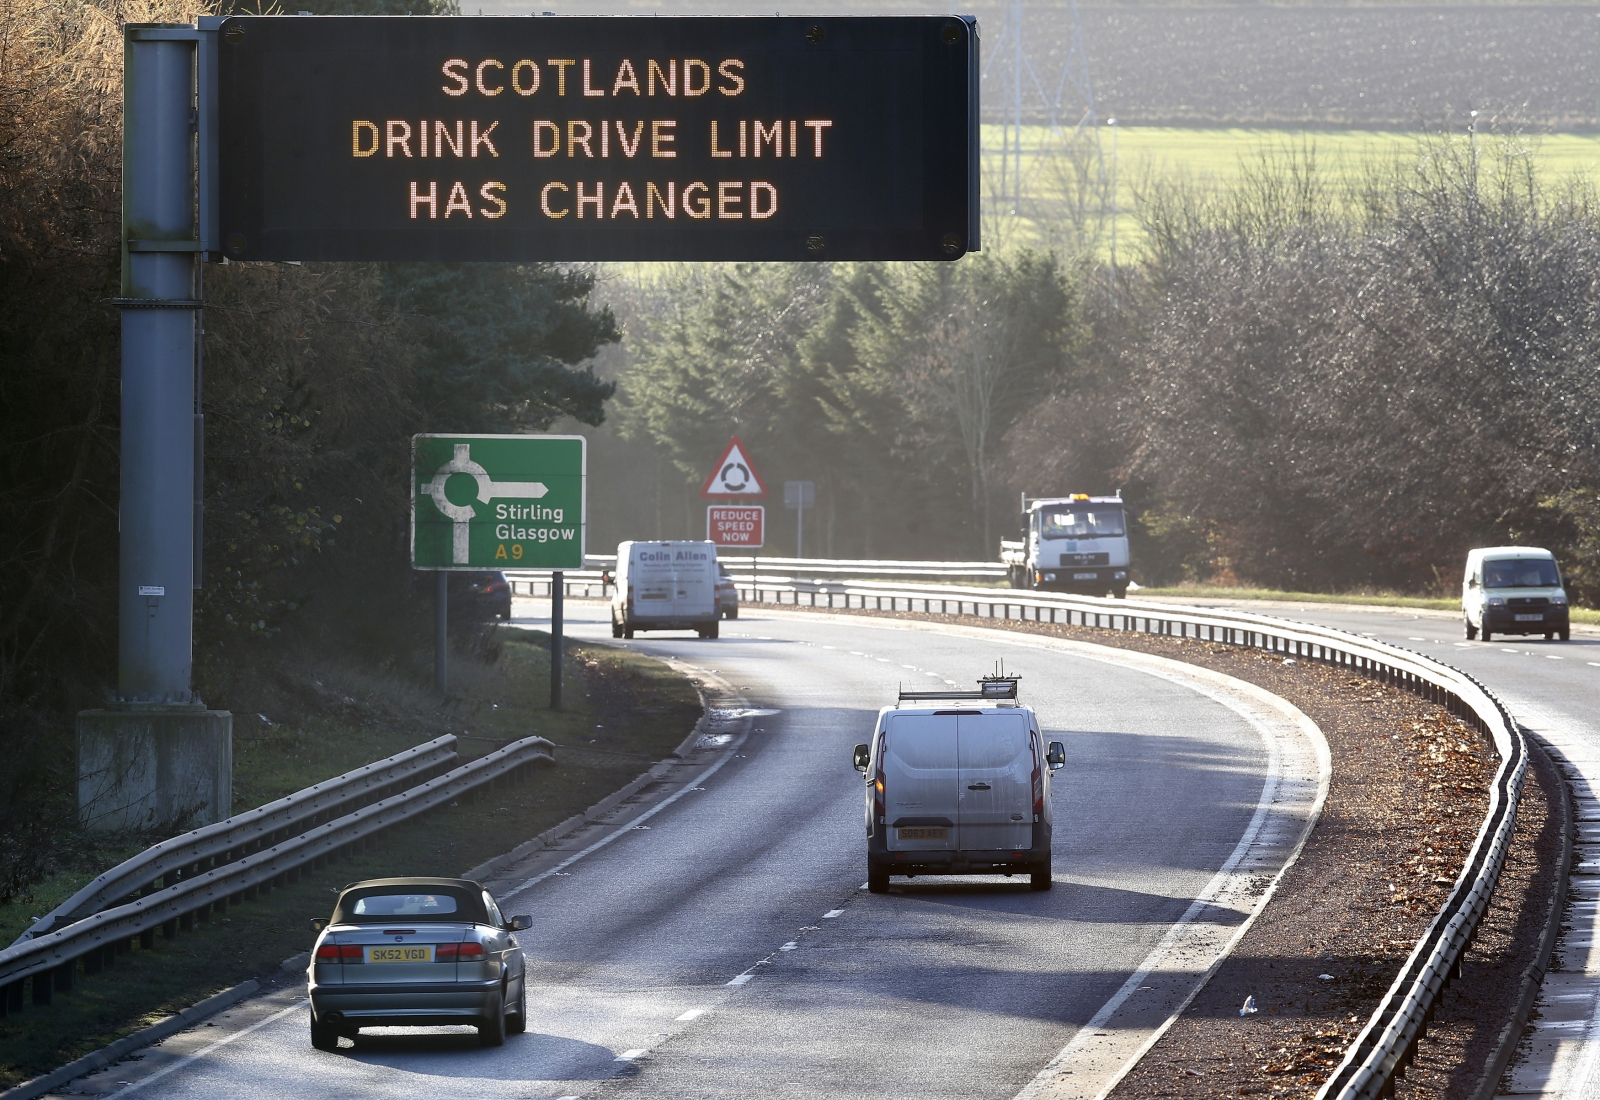 Scotland drink-drive limit